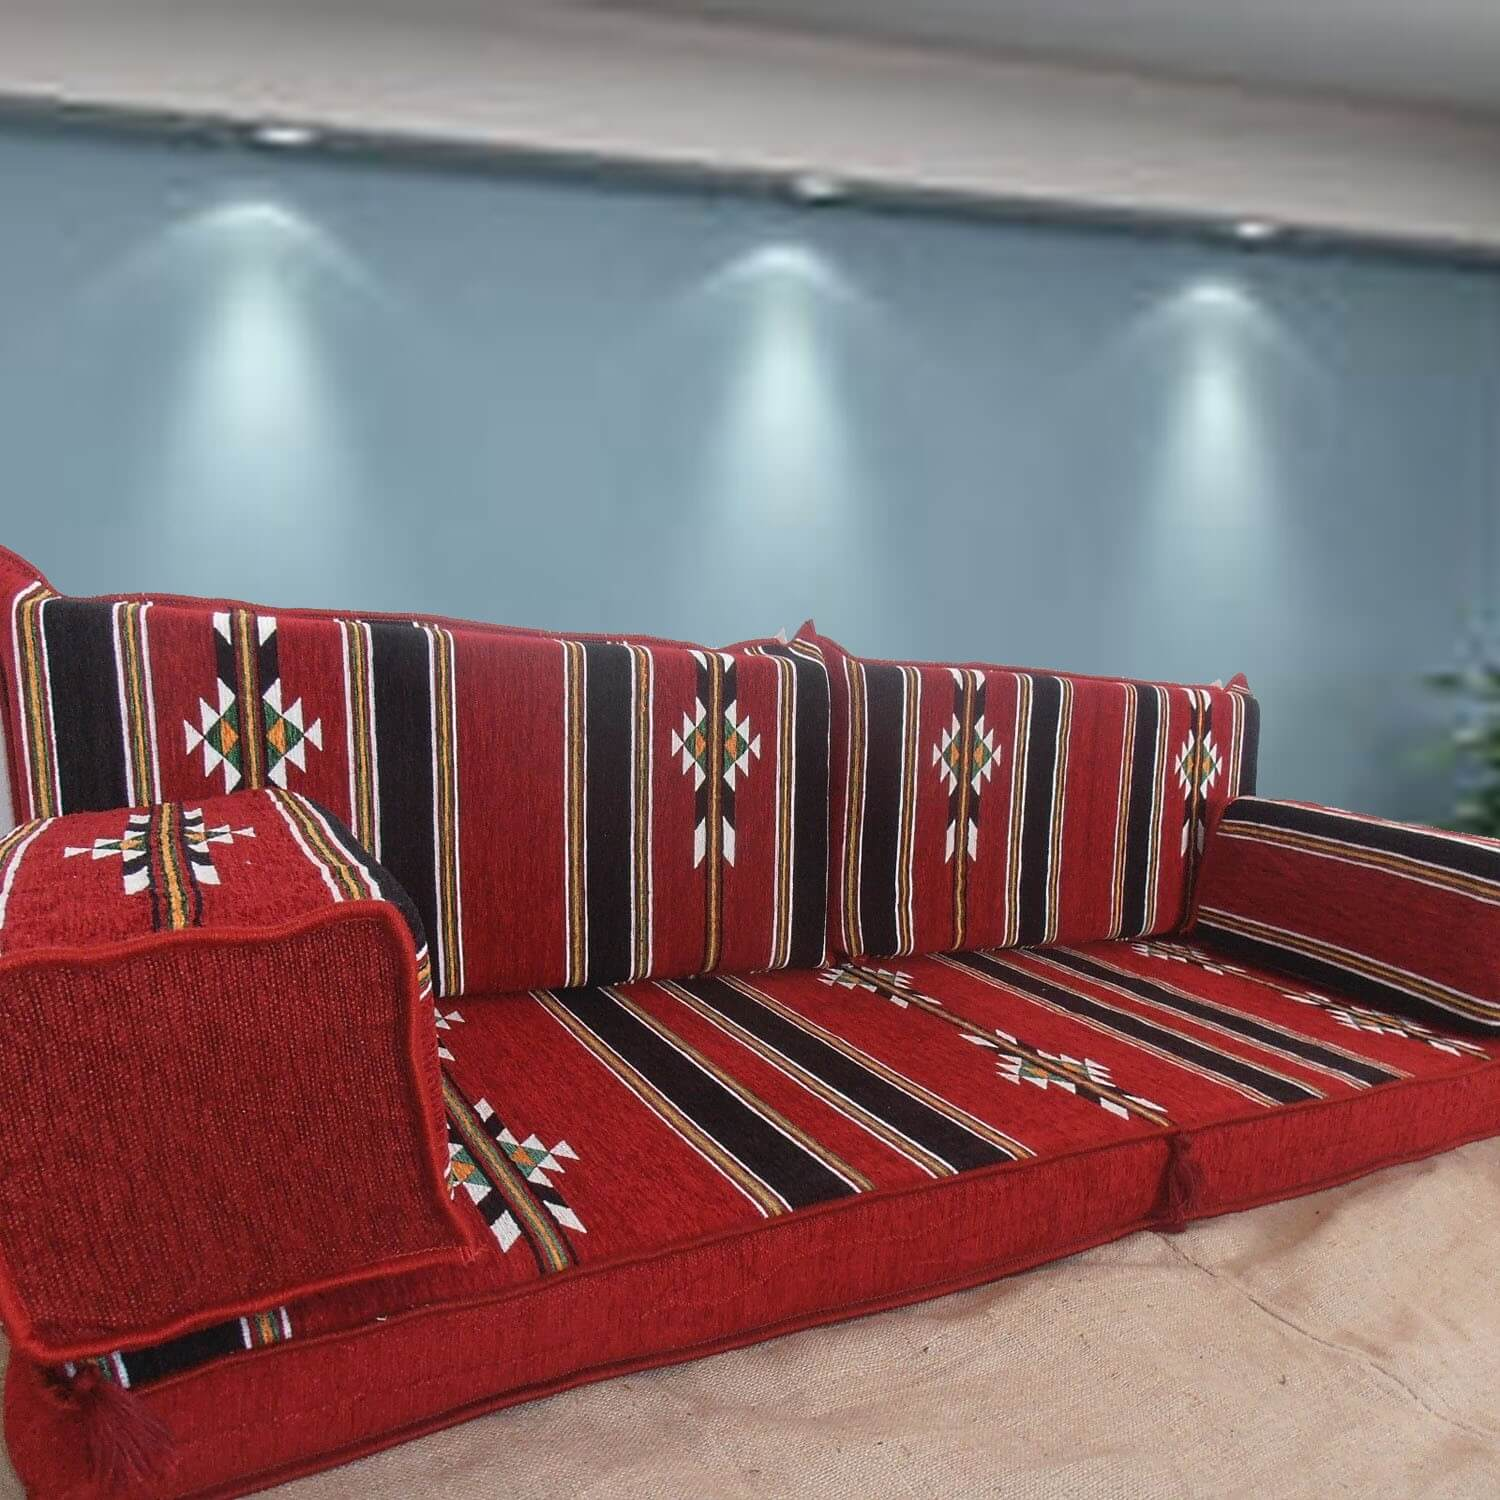 Floor sofa with double back pillows - SHI_FS221